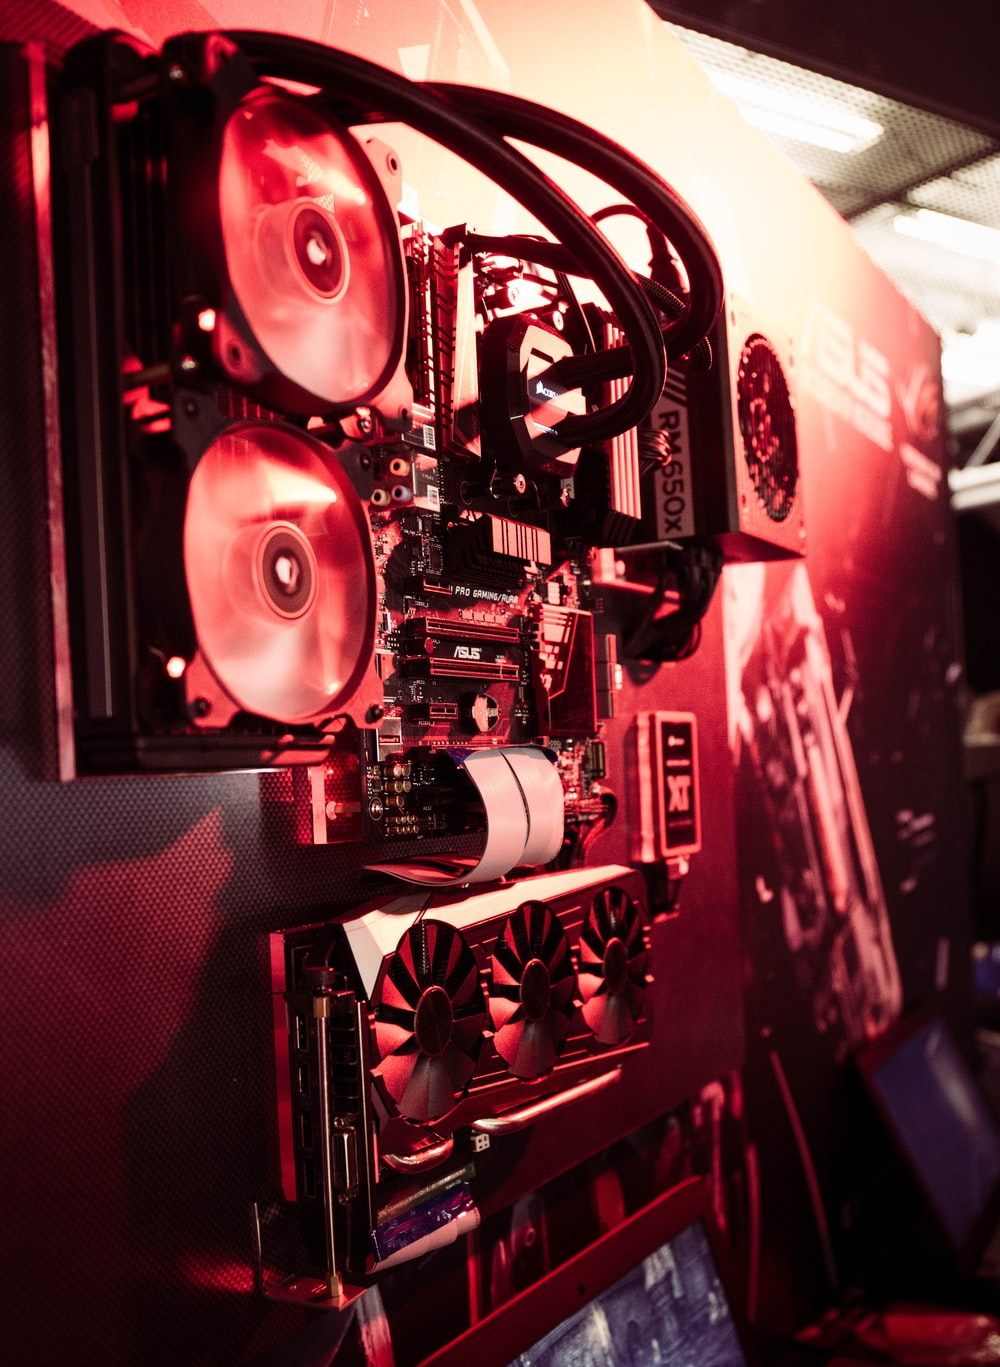 computer motherboard near graphics card